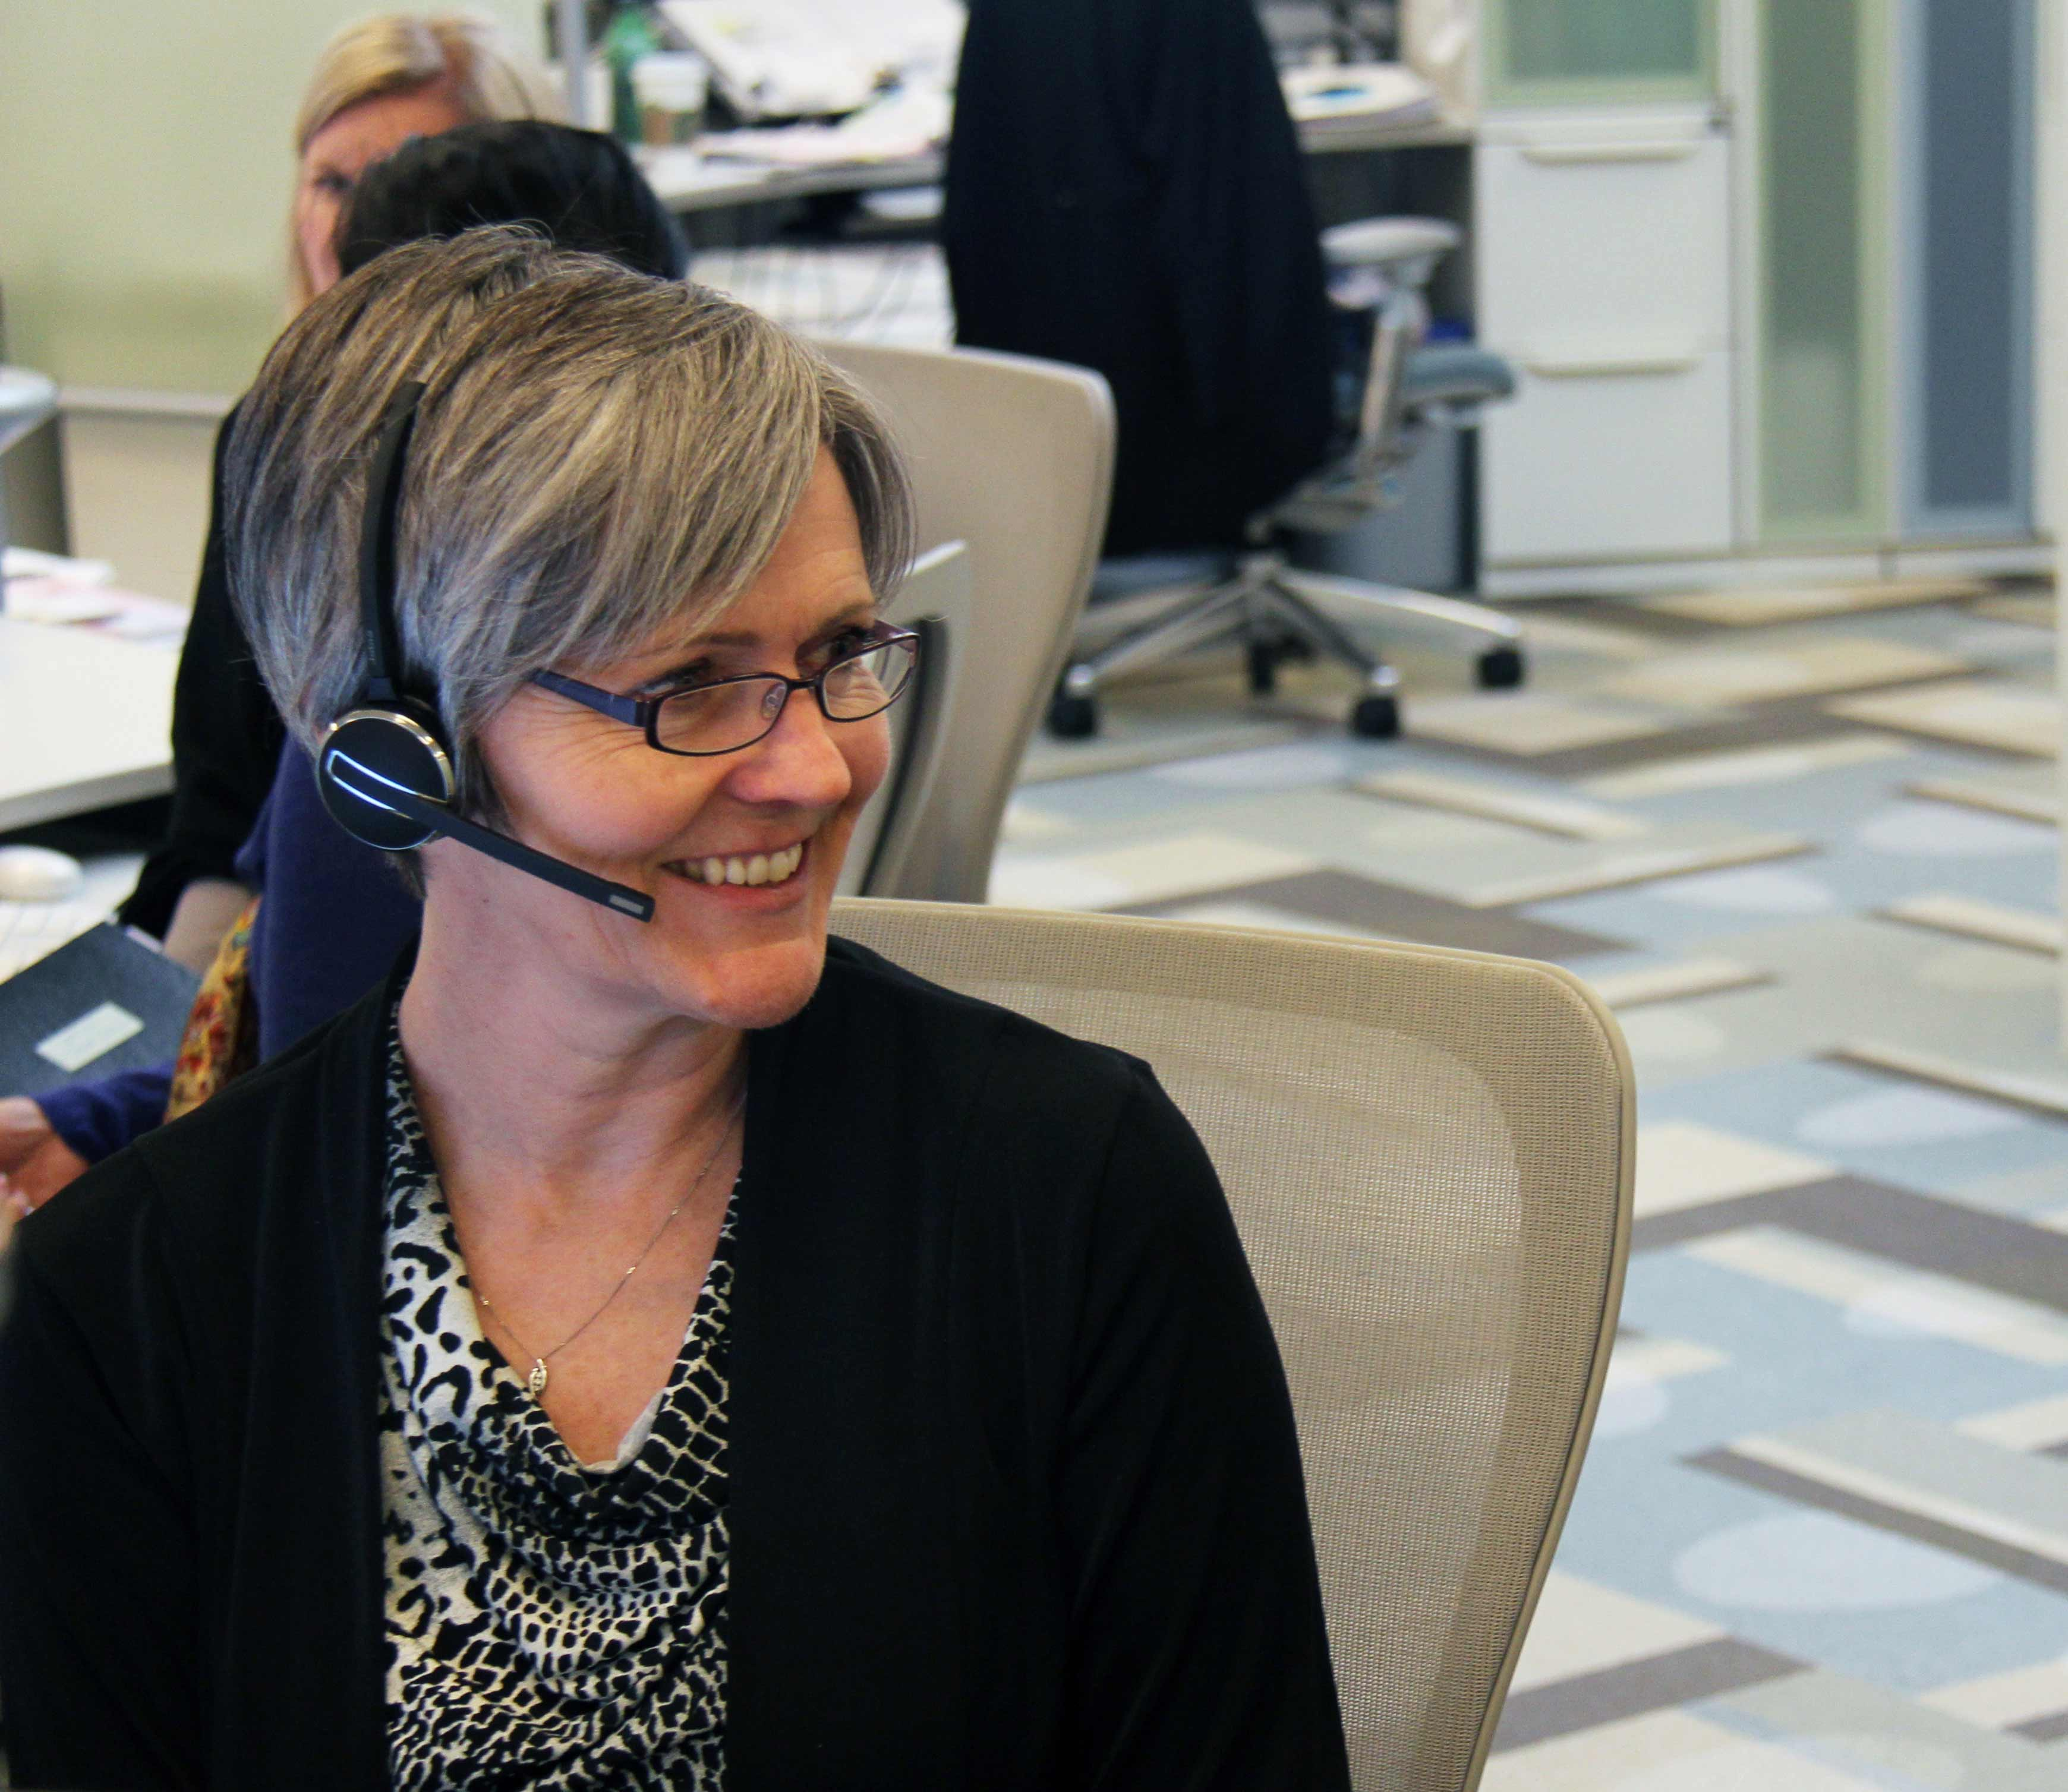 an employee of the office of the Ontario Ombudsman, wearing a headset